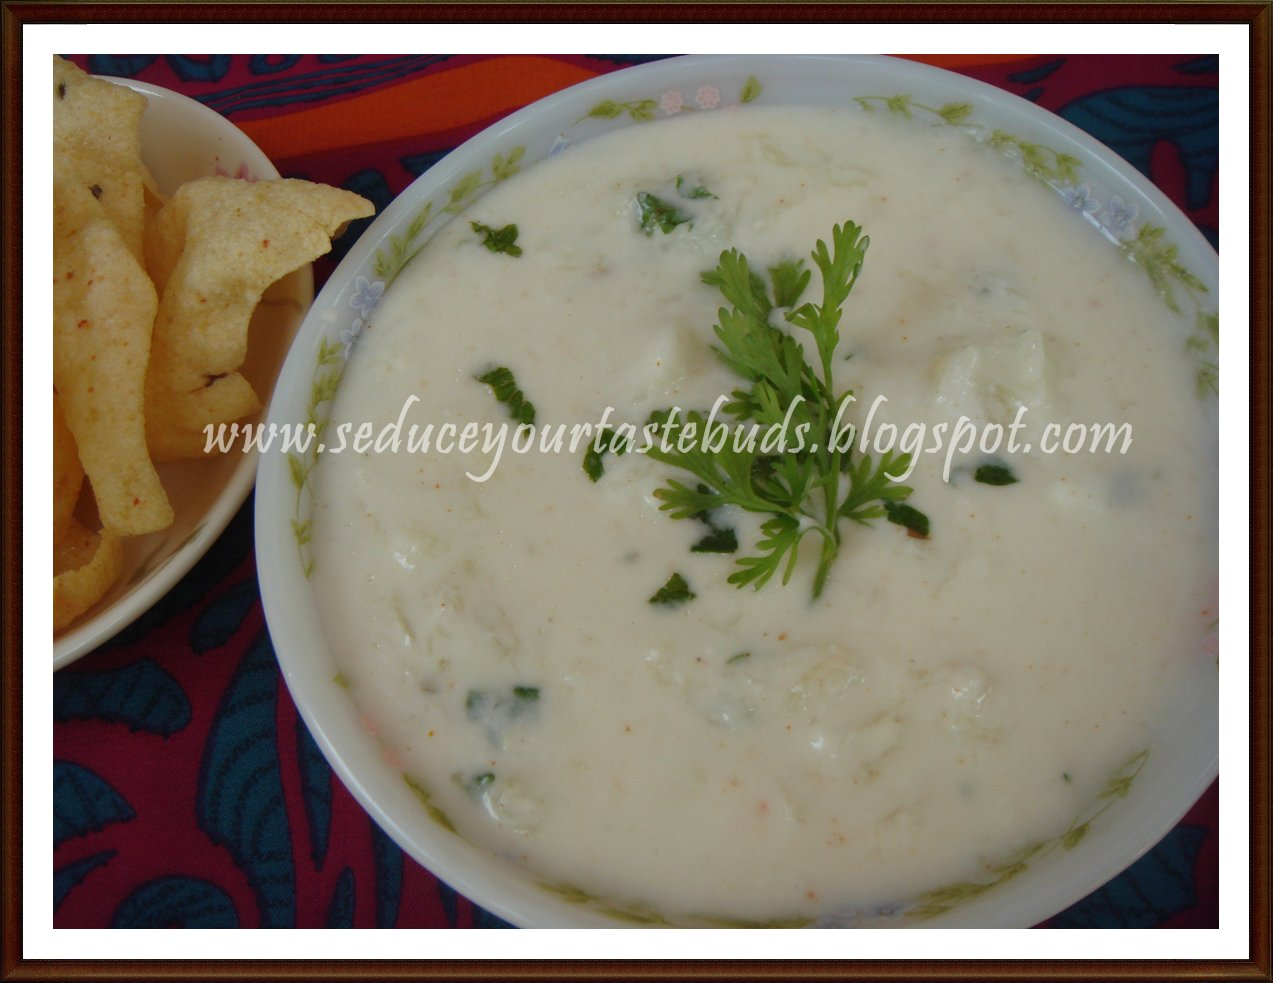 Jajeek iraqi cucumber yogurt dip for taste and create seduce set about bookmarking the recipes that i wanted to try and this jajeek recipe was the first it sounded so much similar to the indian cucumber raita forumfinder Image collections